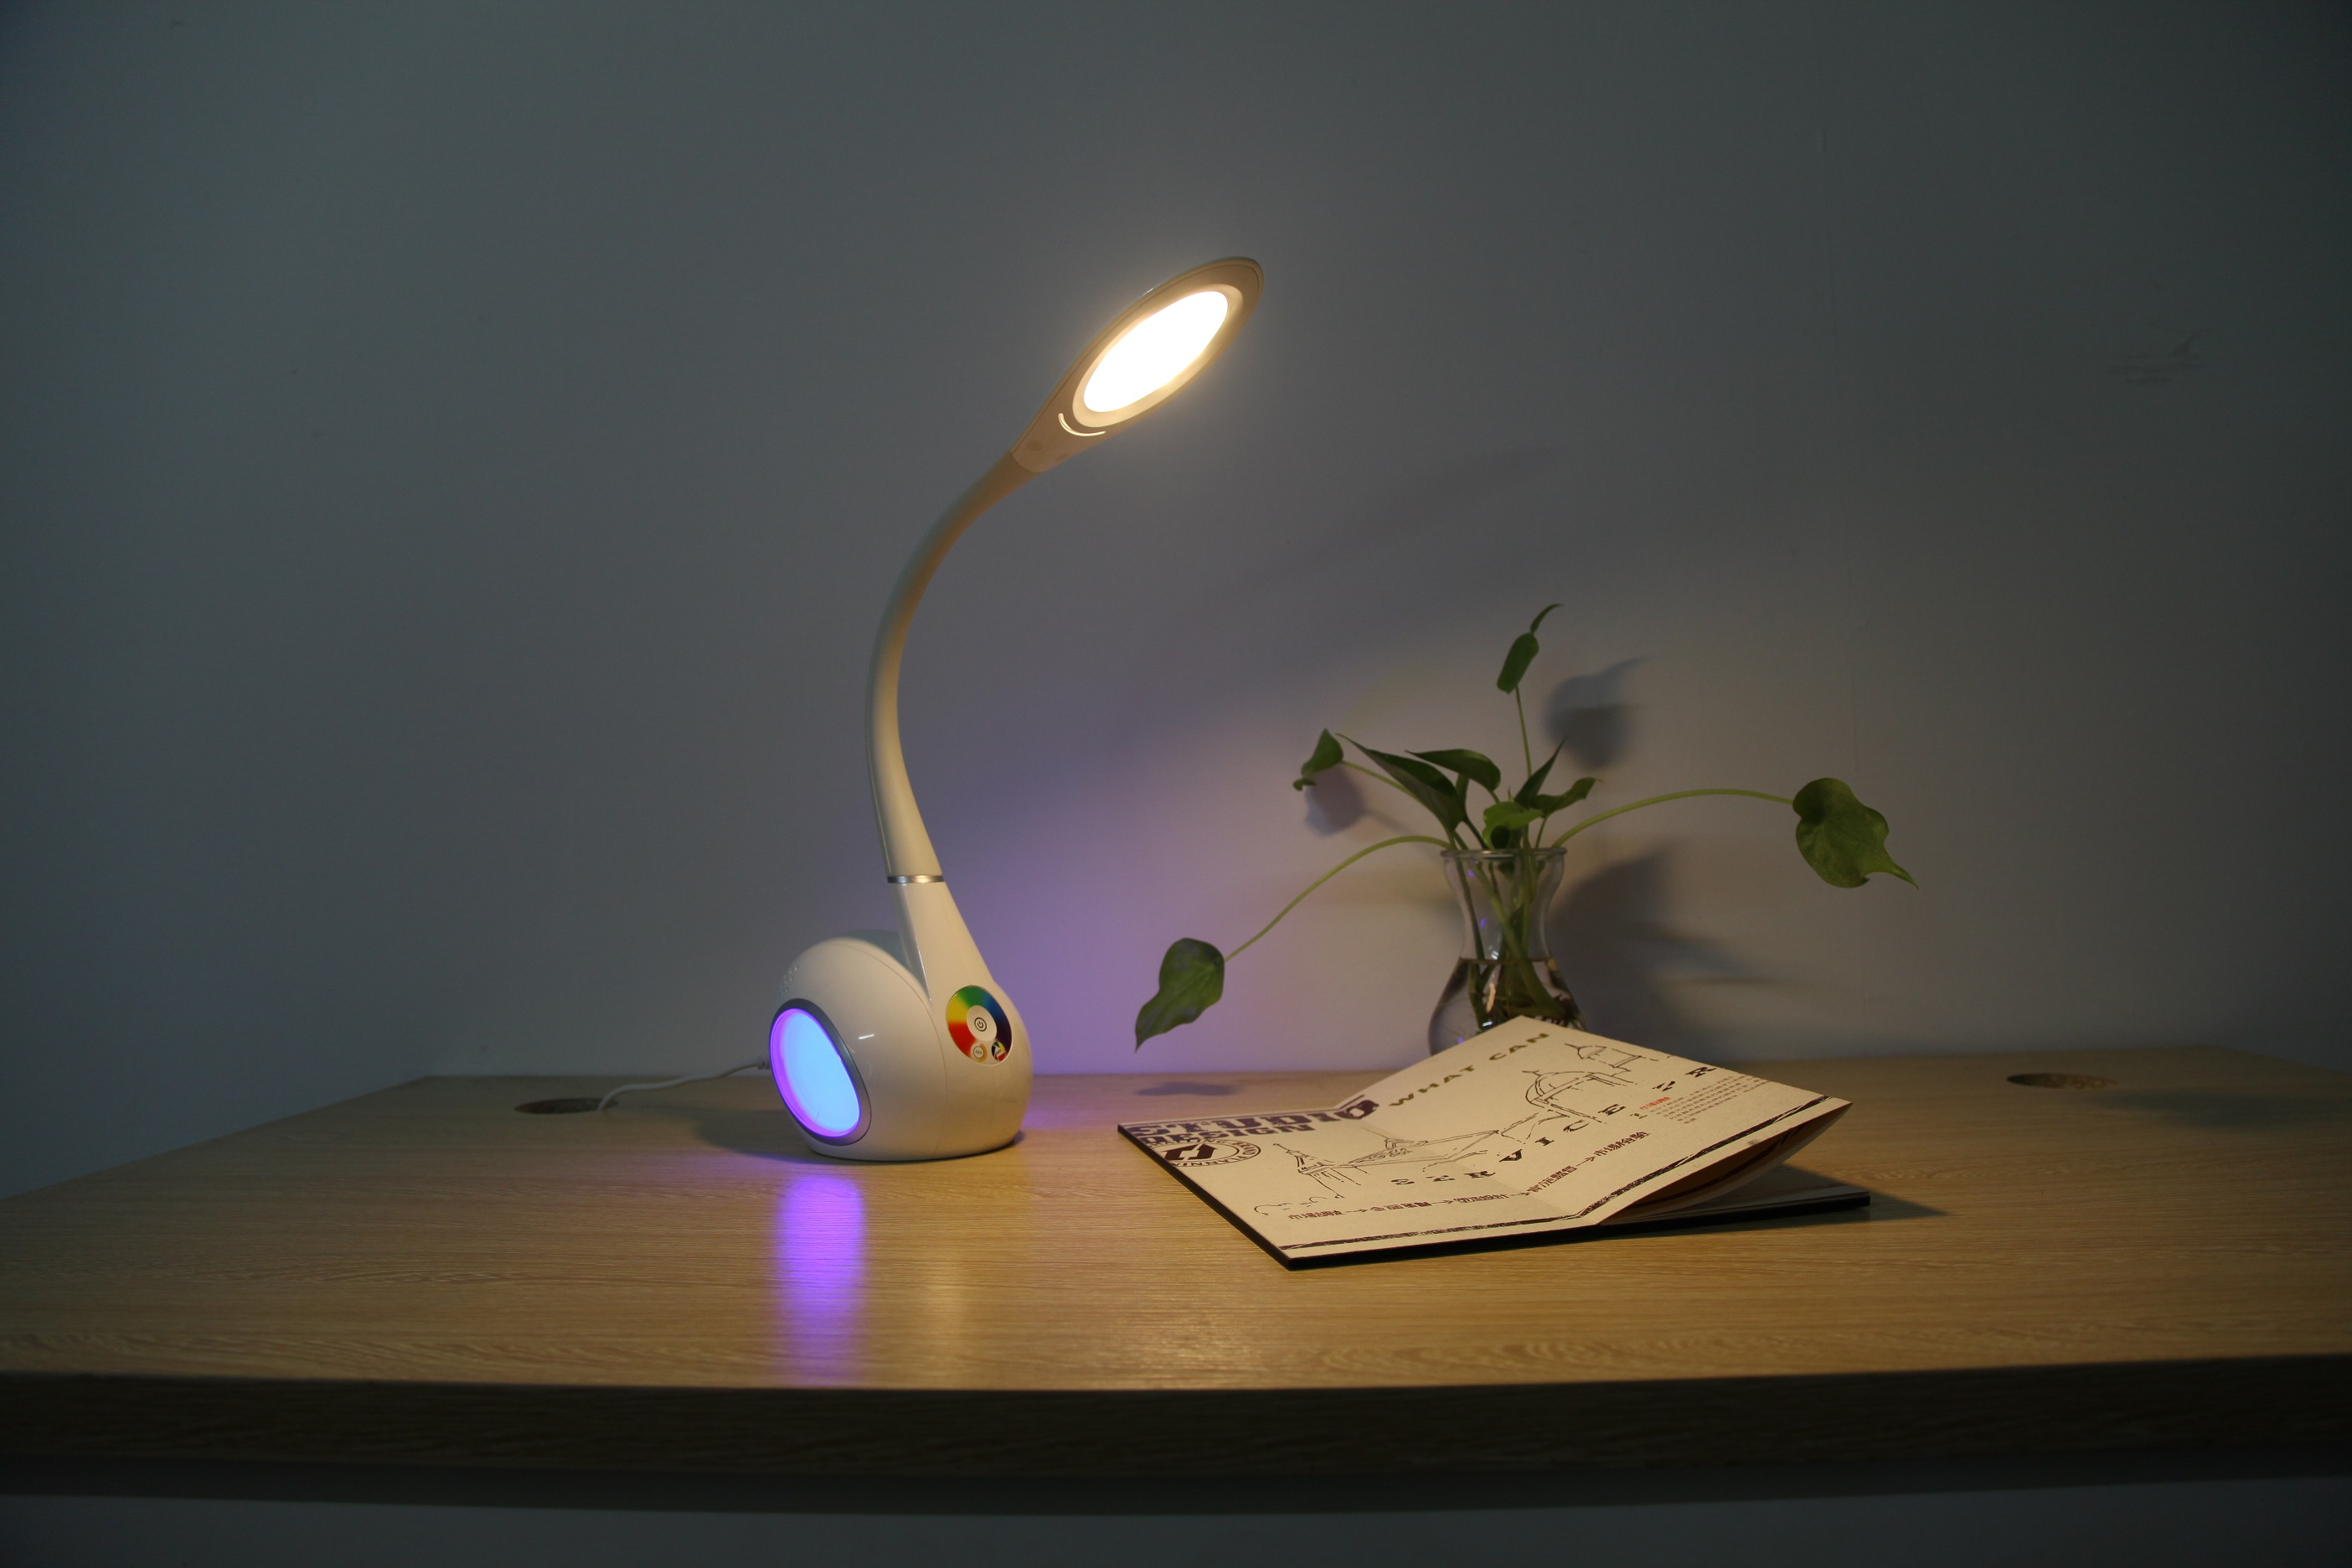 Swan Led Table Lamp With Color Changing Base Flexible Led